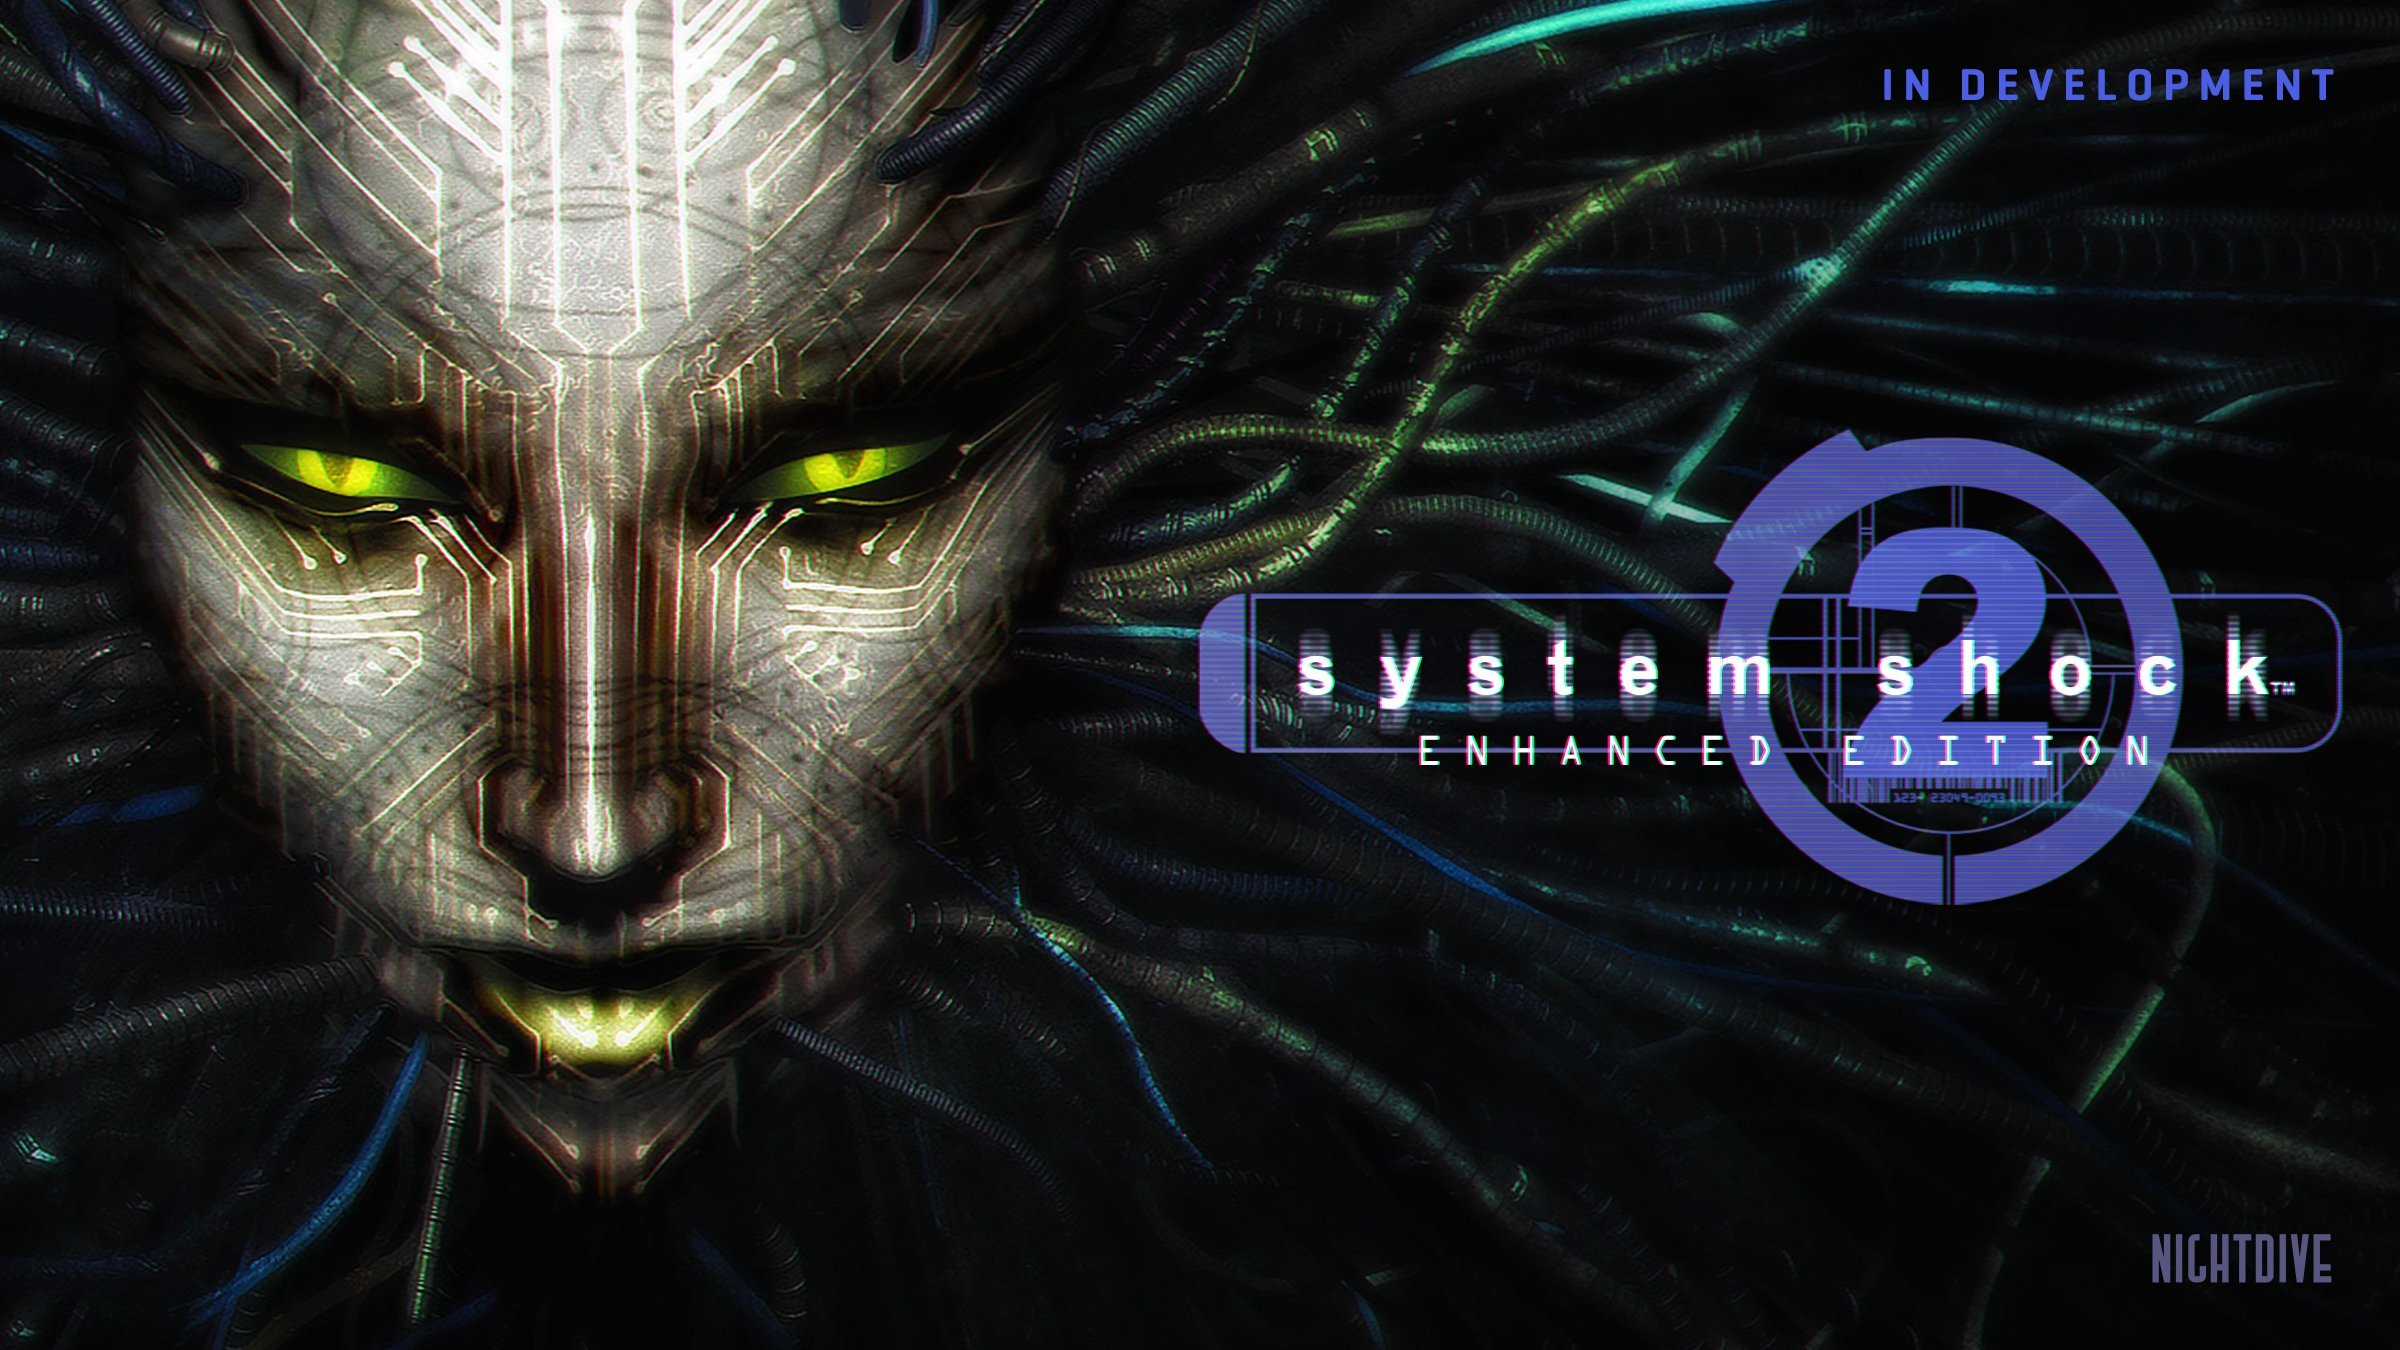 Nightdive Studios confirm System Shock 2 Enhanced Edition